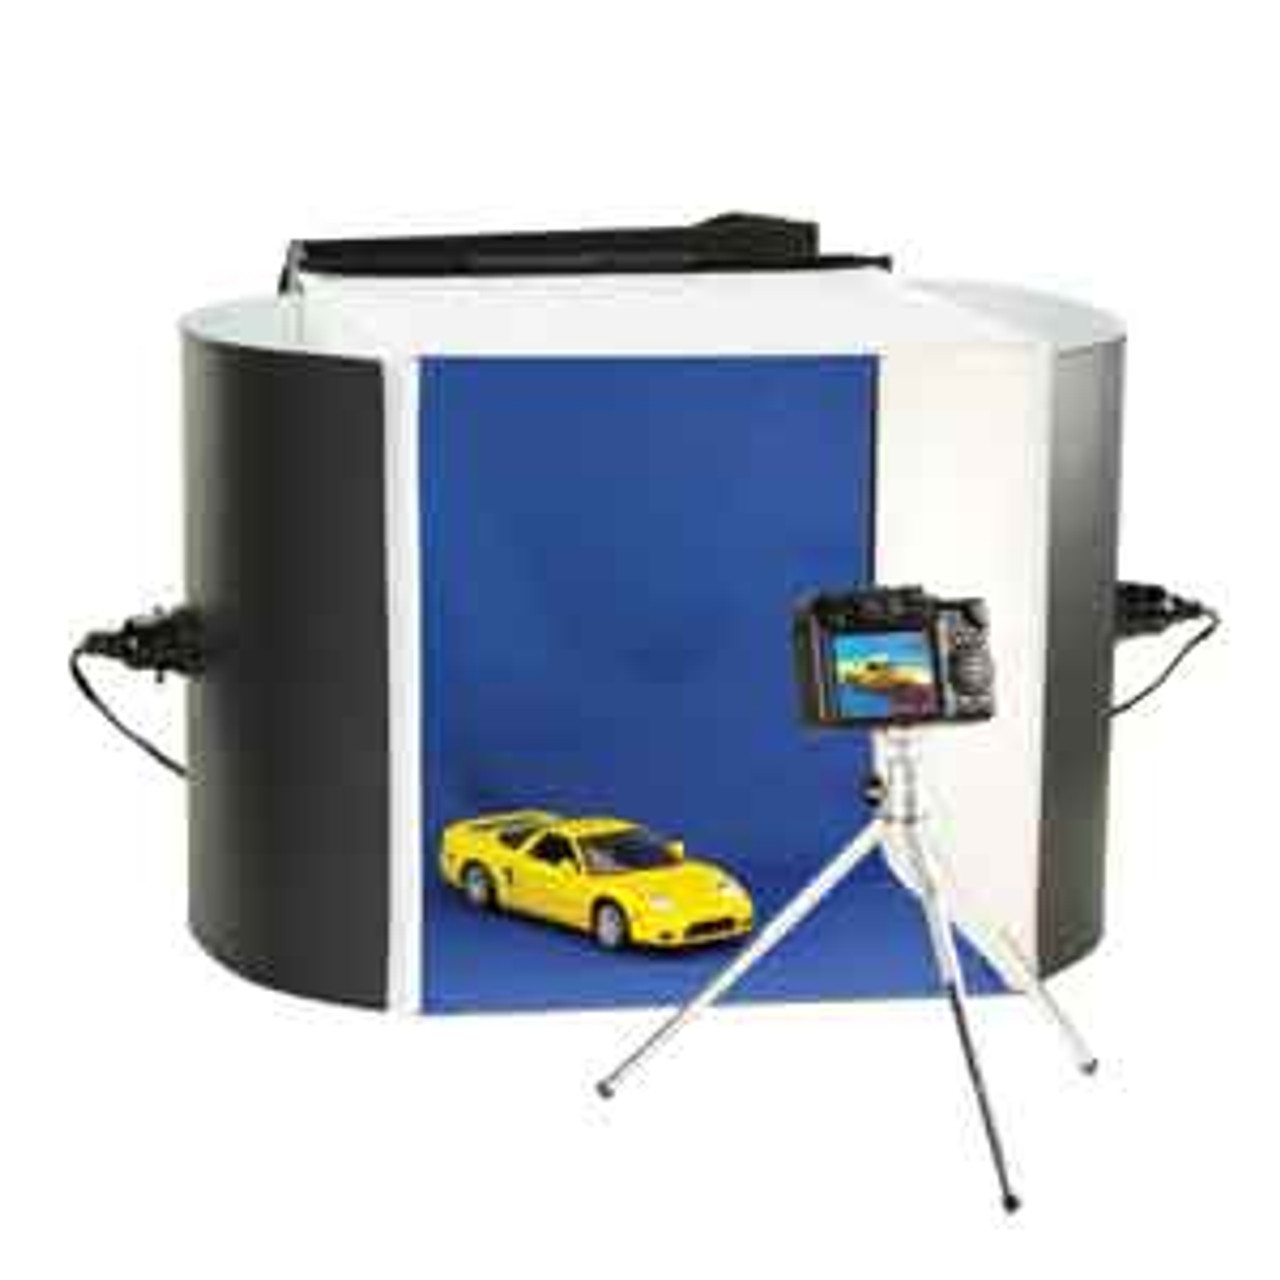 Optex Portable Photo Studio and Lighting Kit